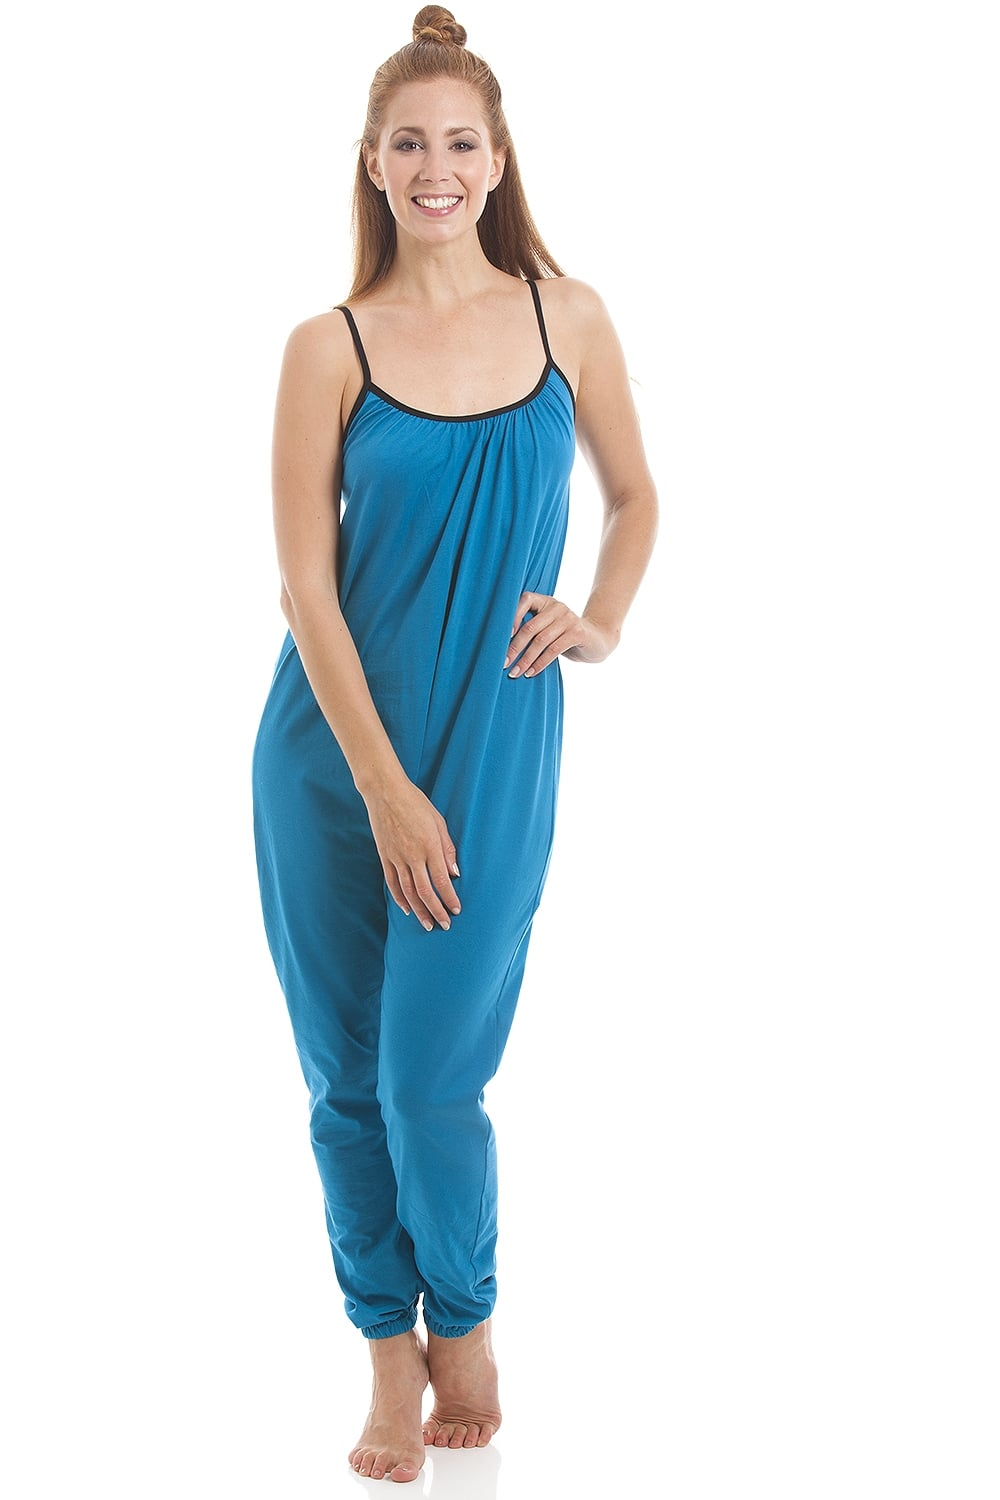 761c5105e4a1 Camille Womens Sleeveless Jersey Cotton Teal Jumpsuit onesie